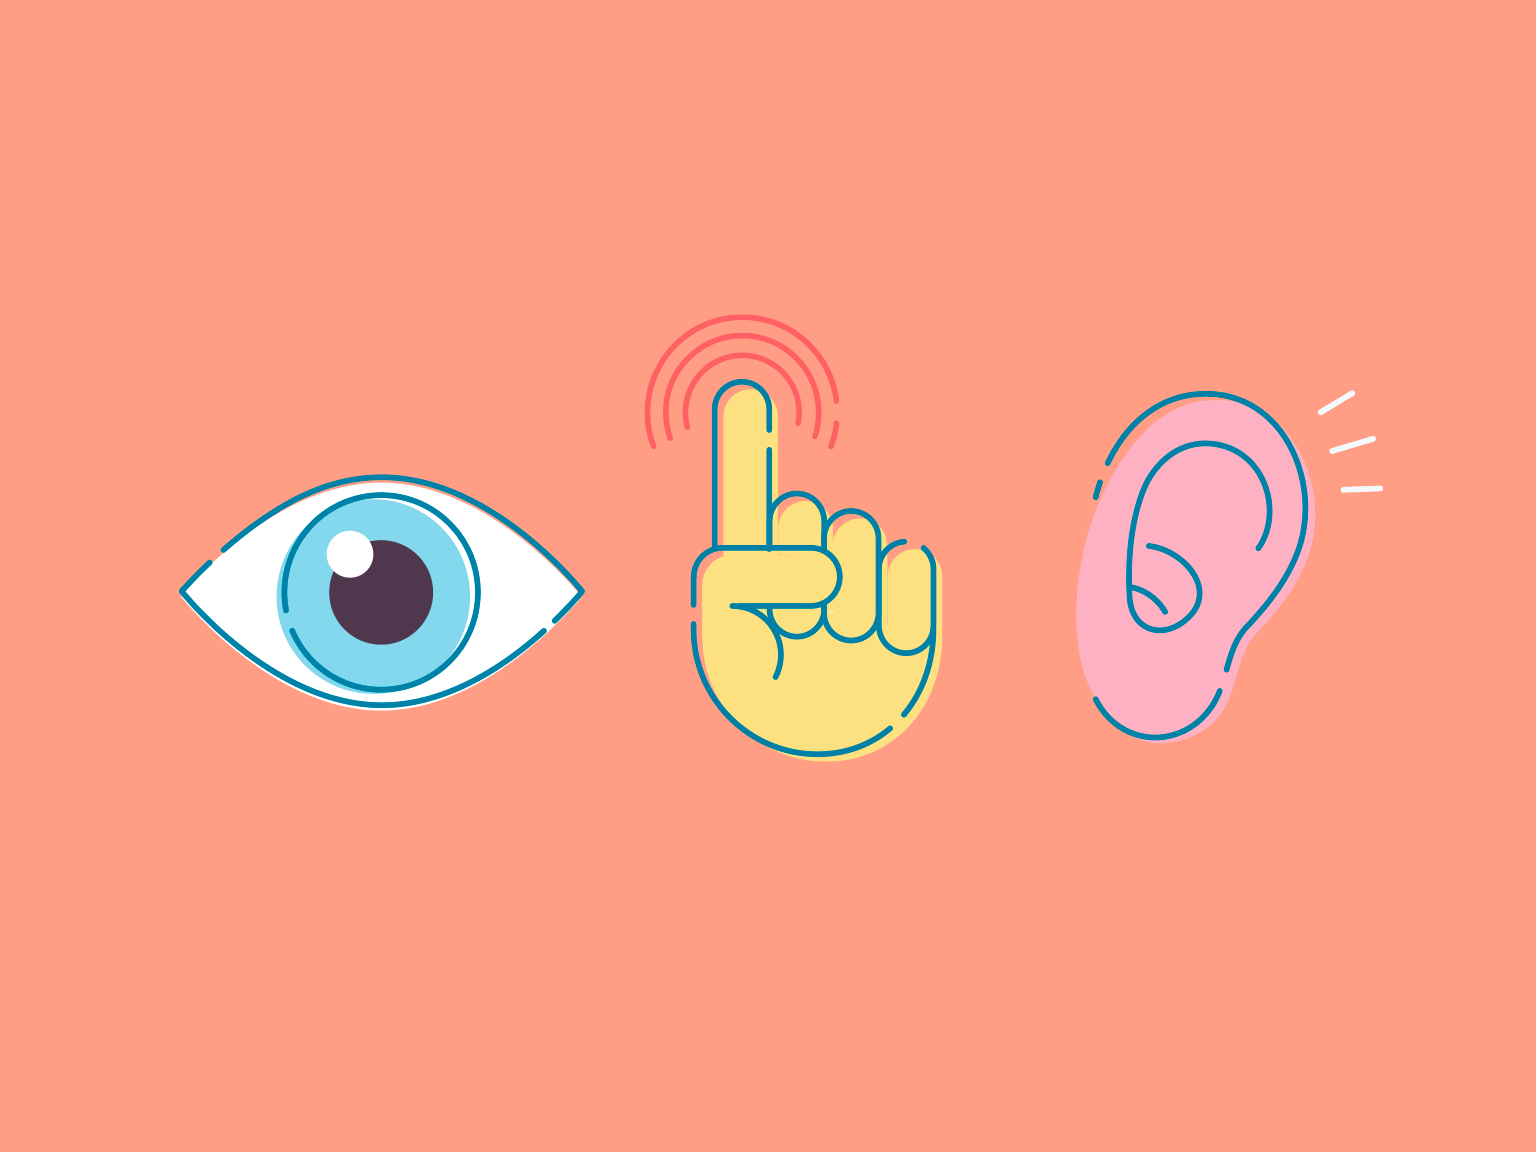 An illustration of an eye, finger, and ear to represent the senses sight, touch, and hearing.